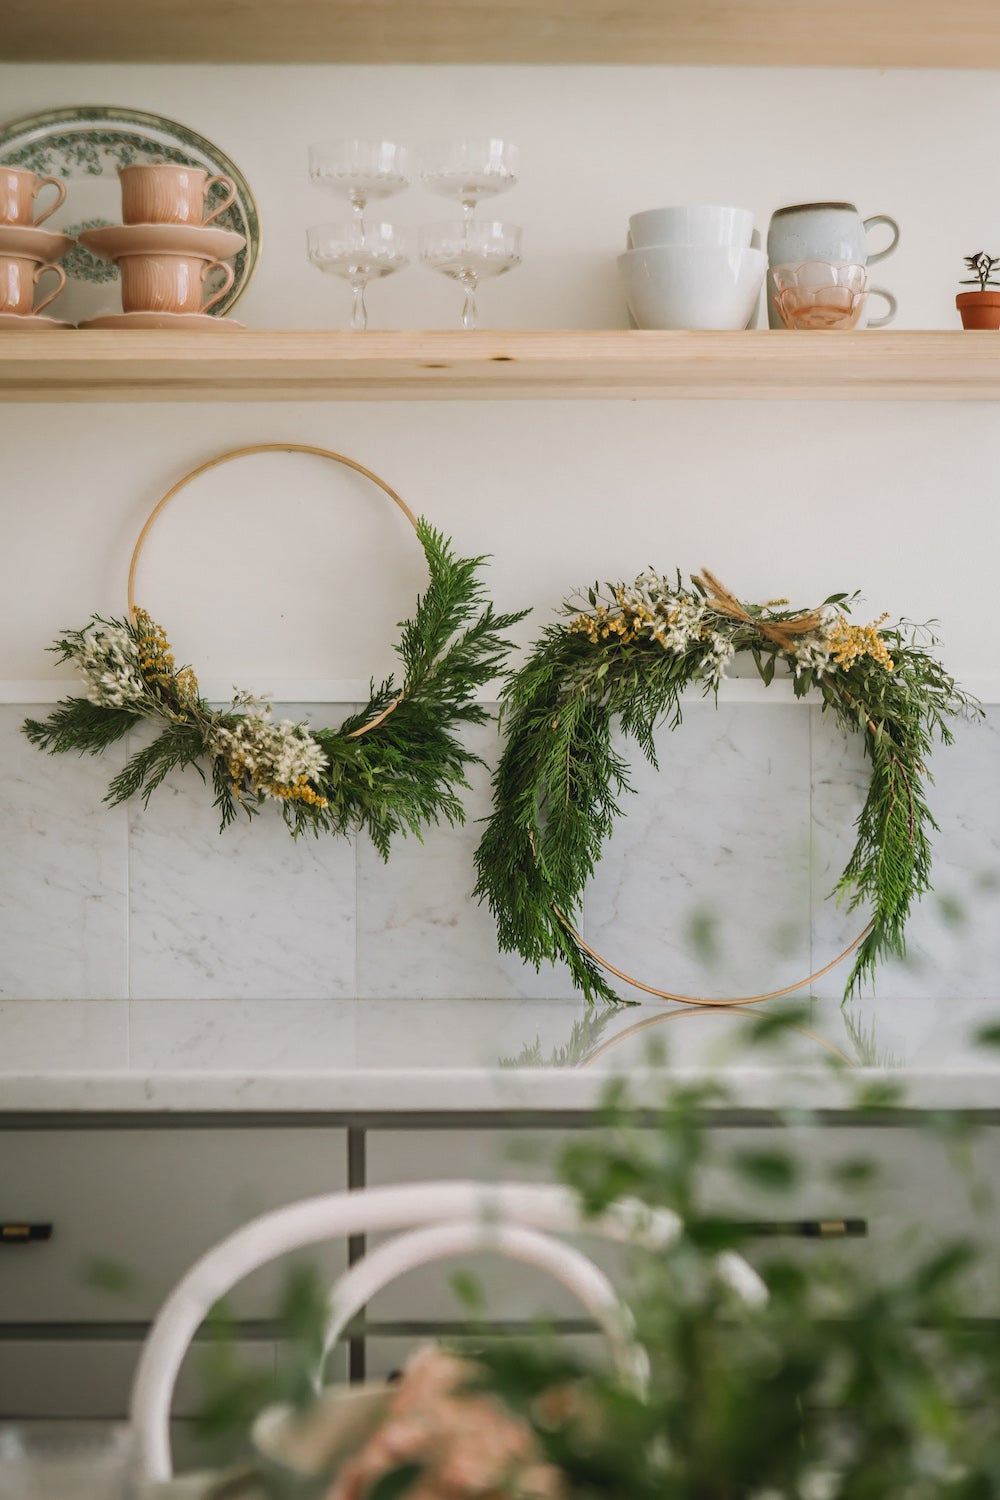 wreaths on kitchne wall